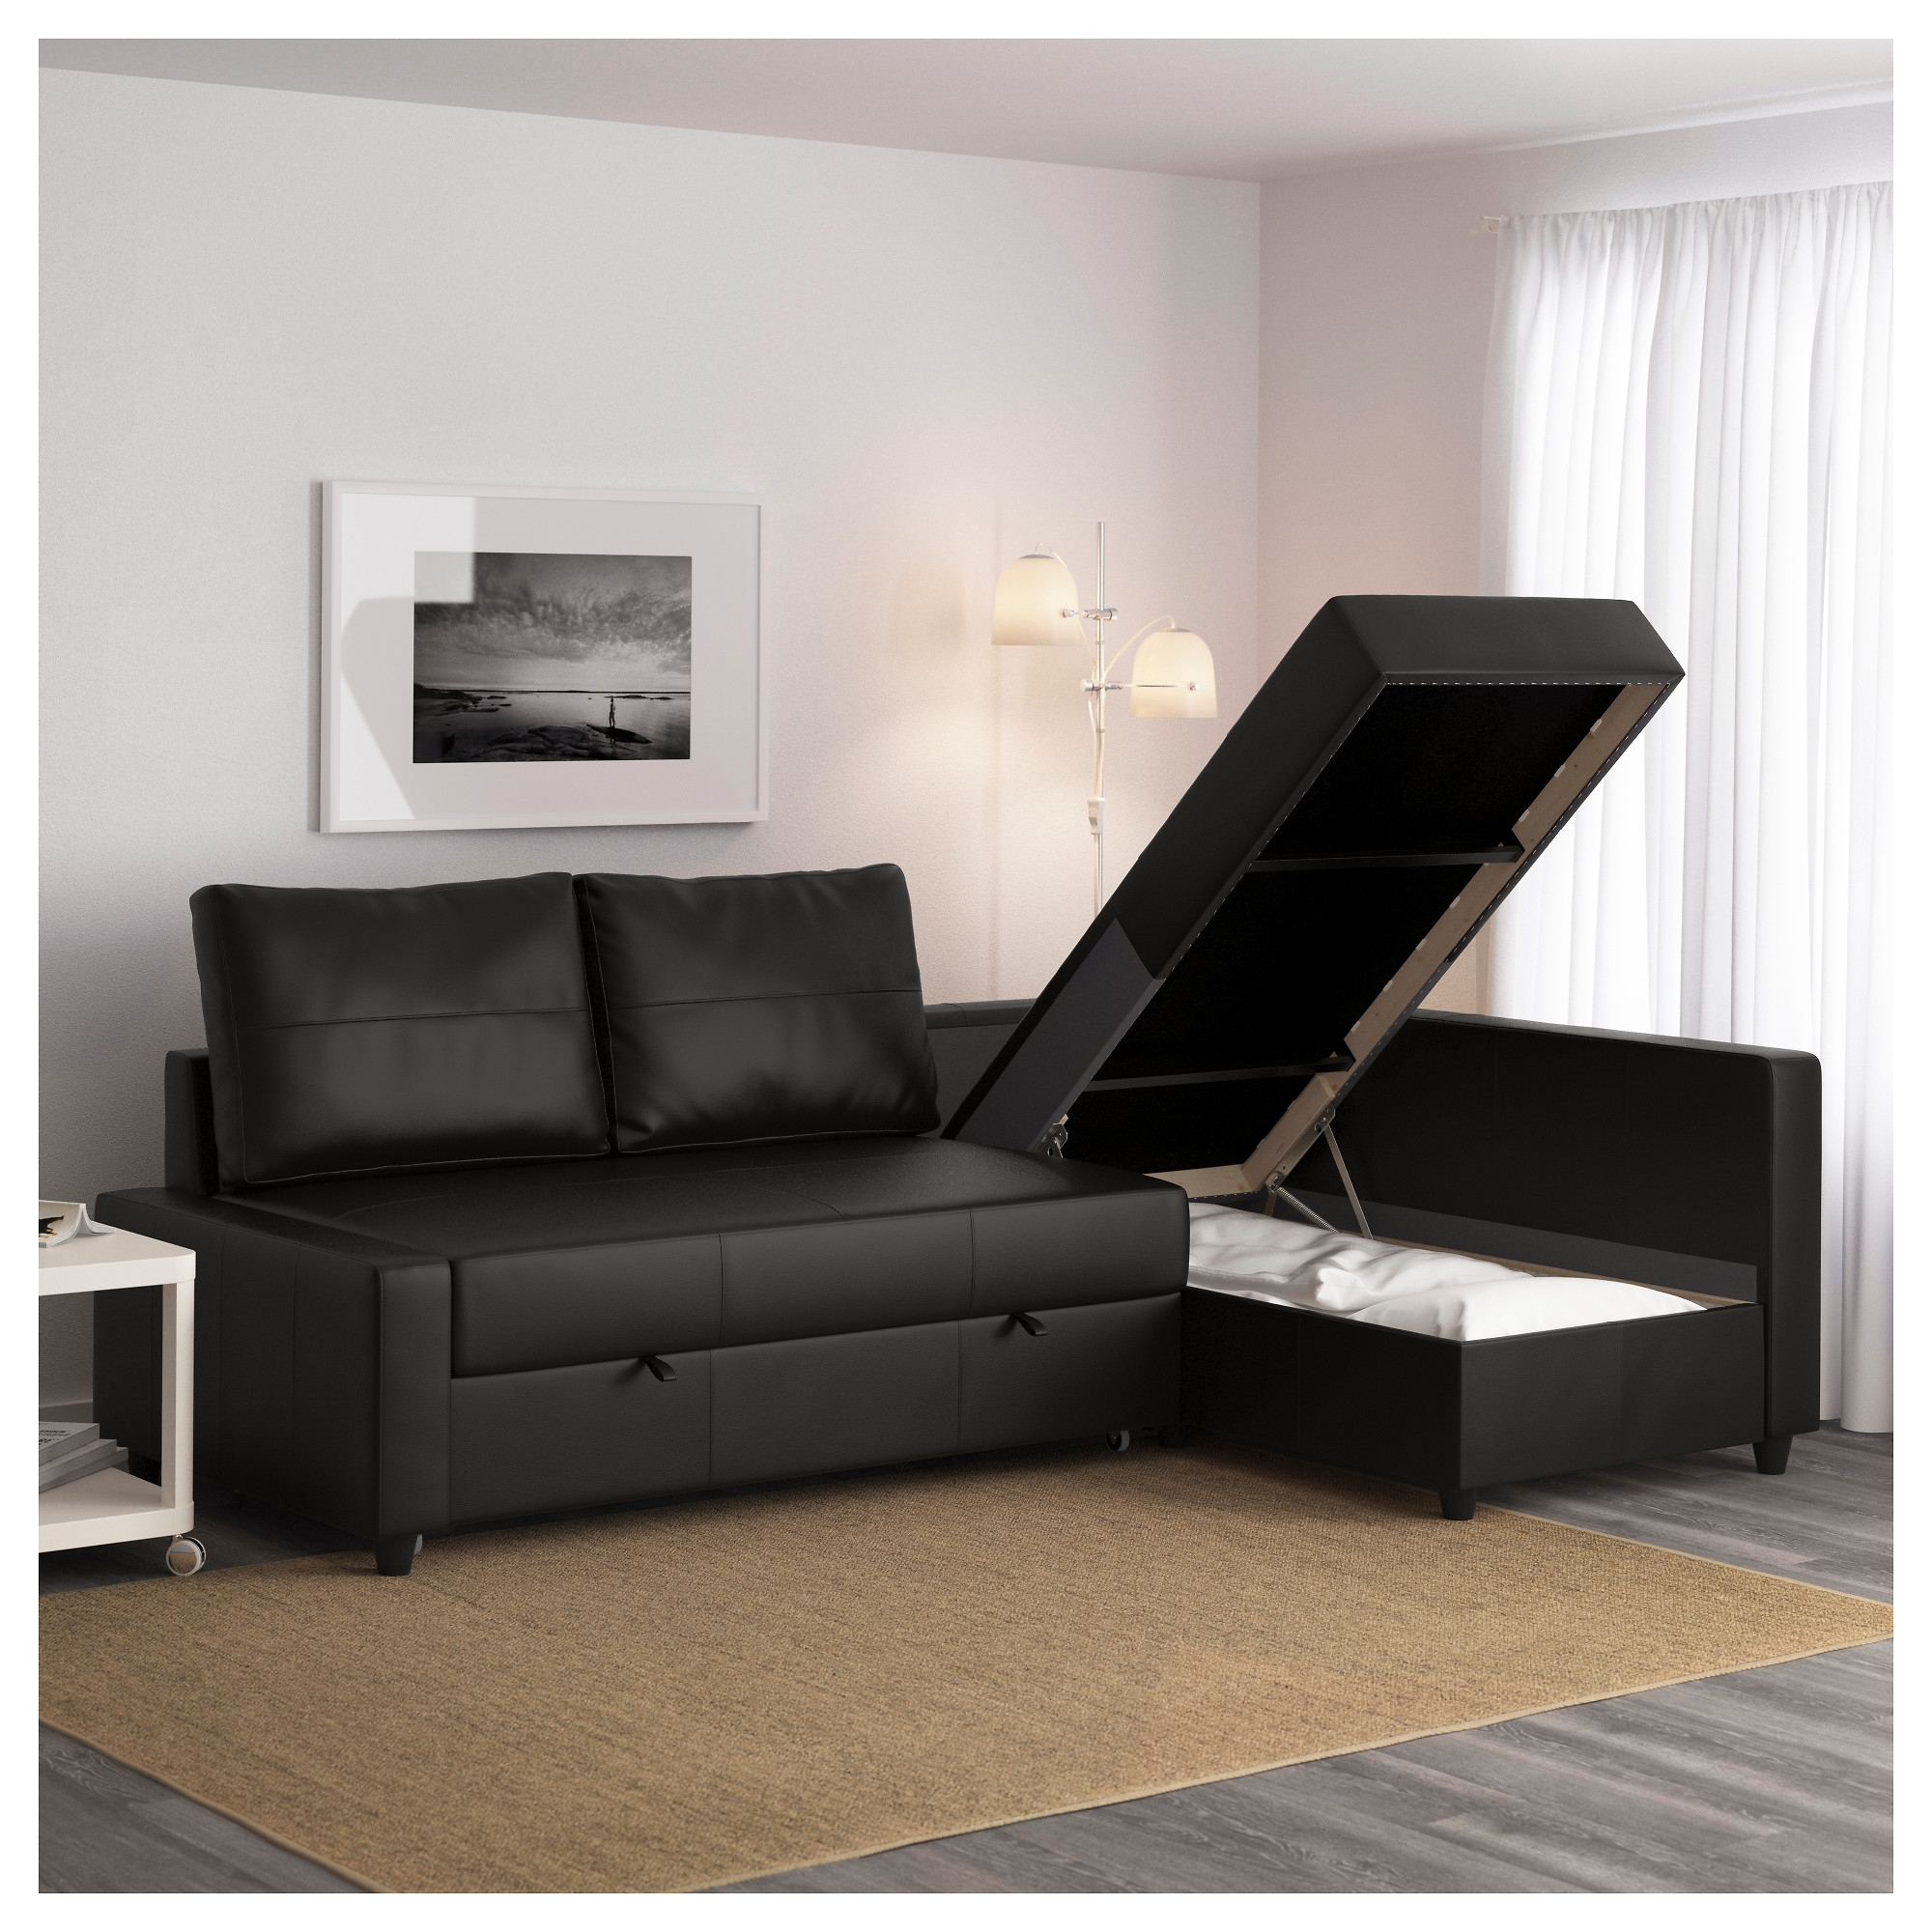 Recent Friheten Sleeper Sectional,3 Seat W/storage – Skiftebo Dark Gray Inside Storage Sofas (View 9 of 15)